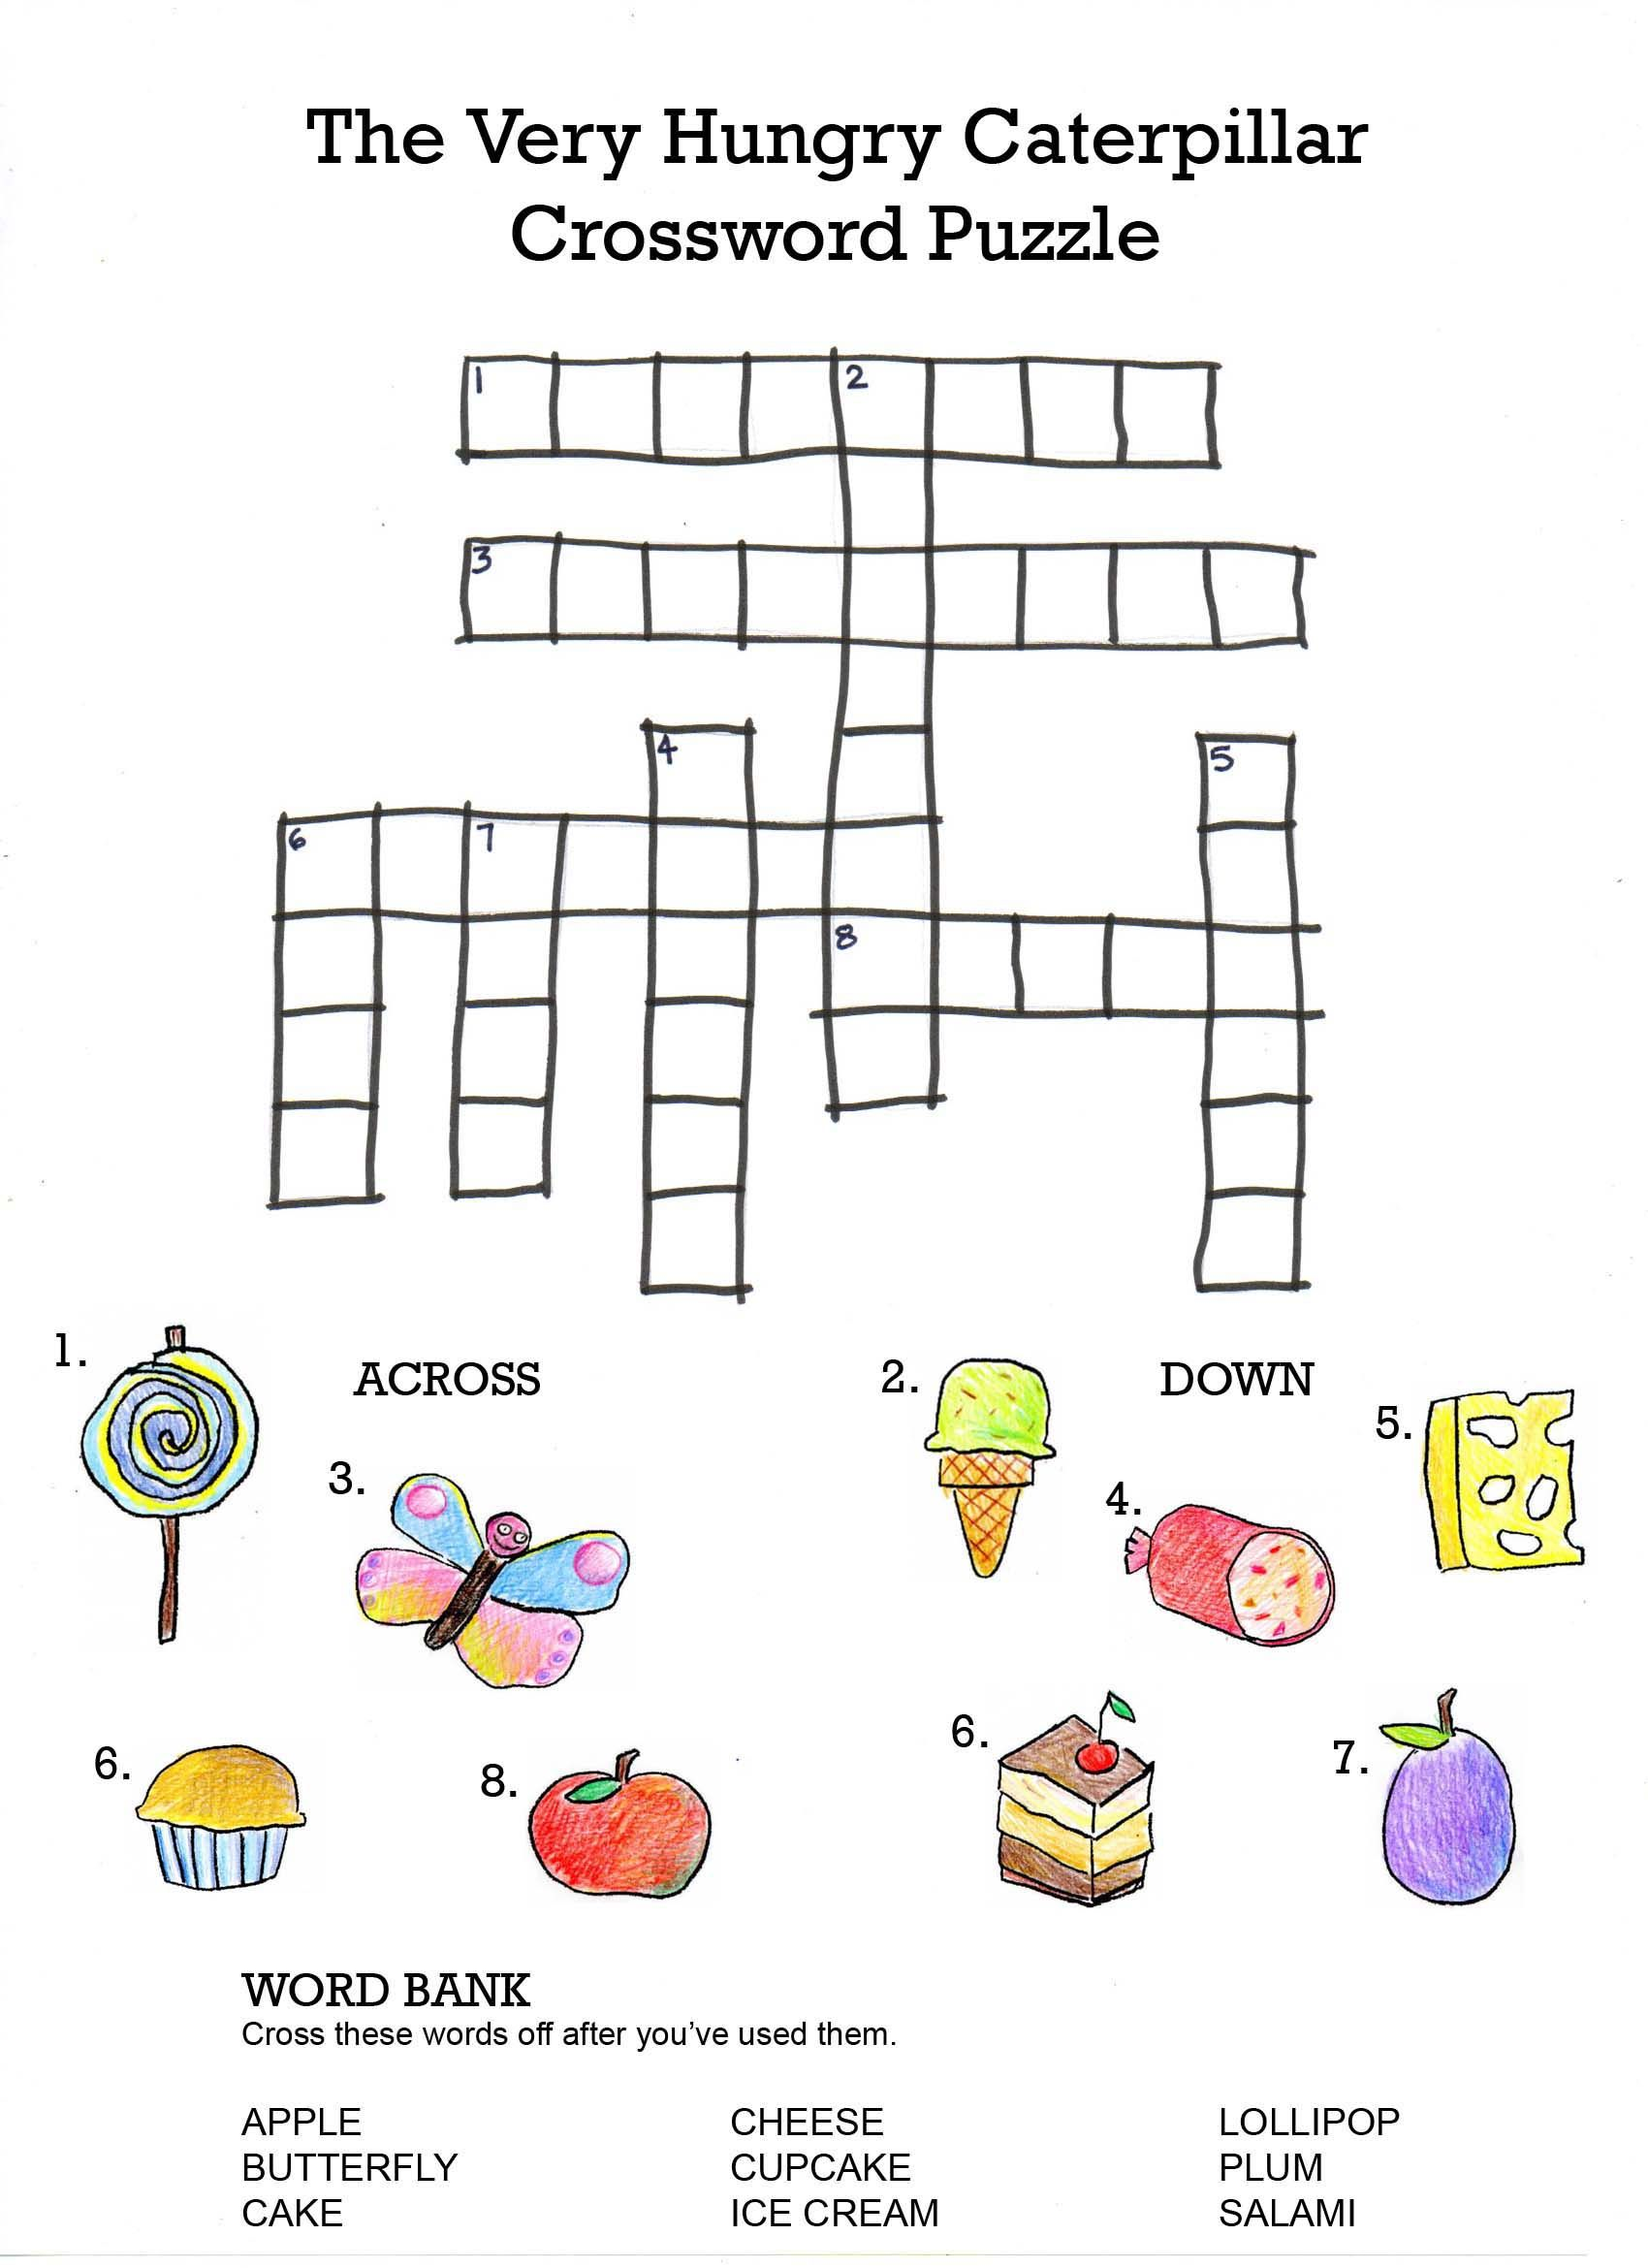 The Very Hungry Caterpillar Crossword